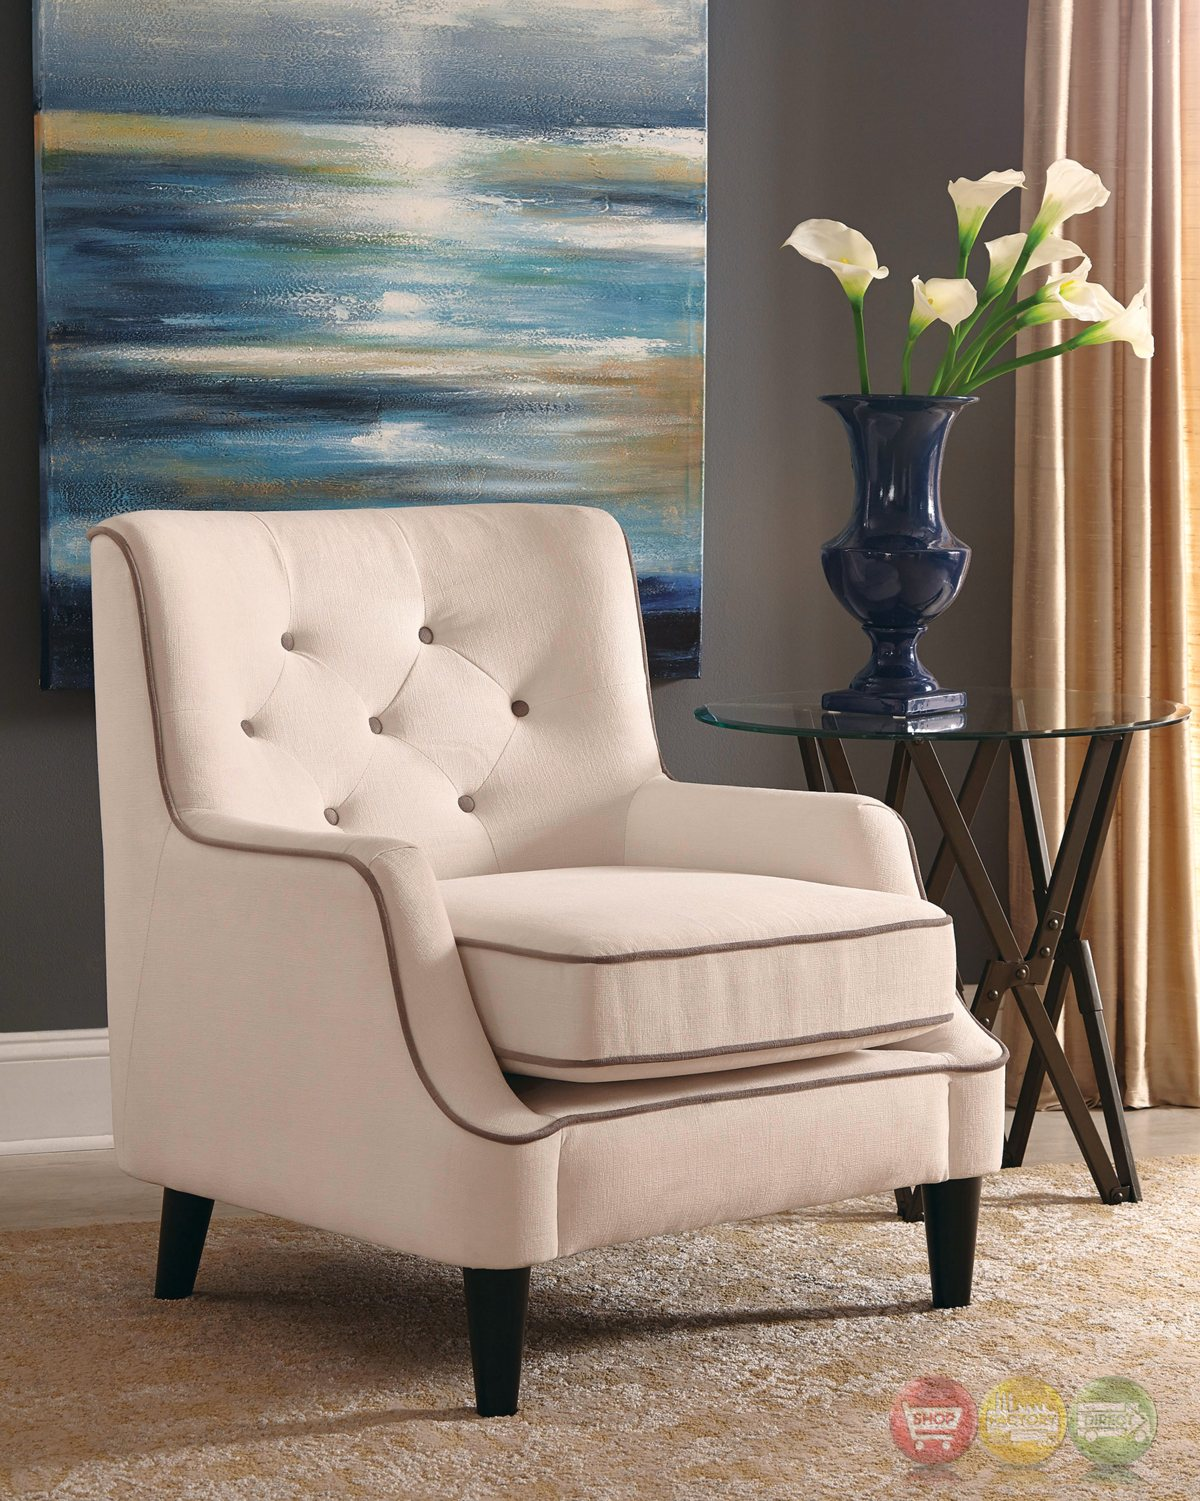 White Tufted Accent Chair White Button Tufted Accent Chair With Cocoa Welted Trim